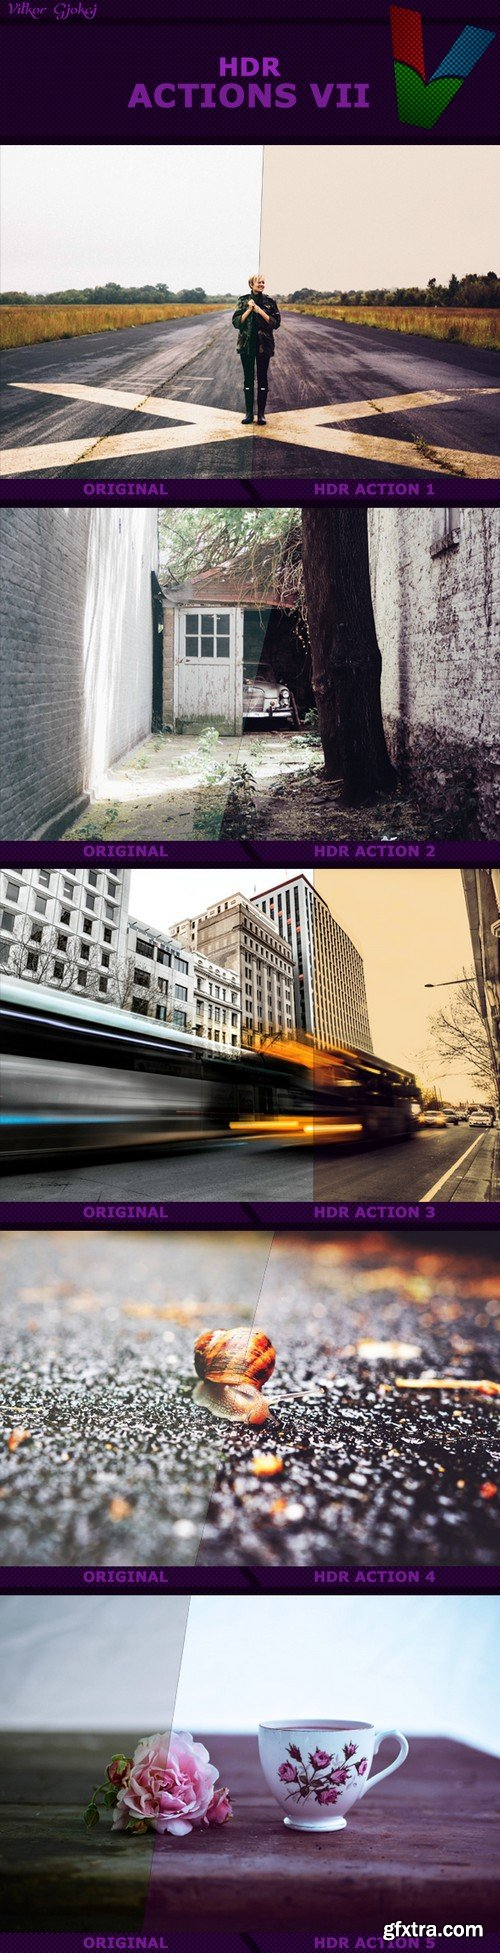 Graphicriver - HDR Action VII 17189230